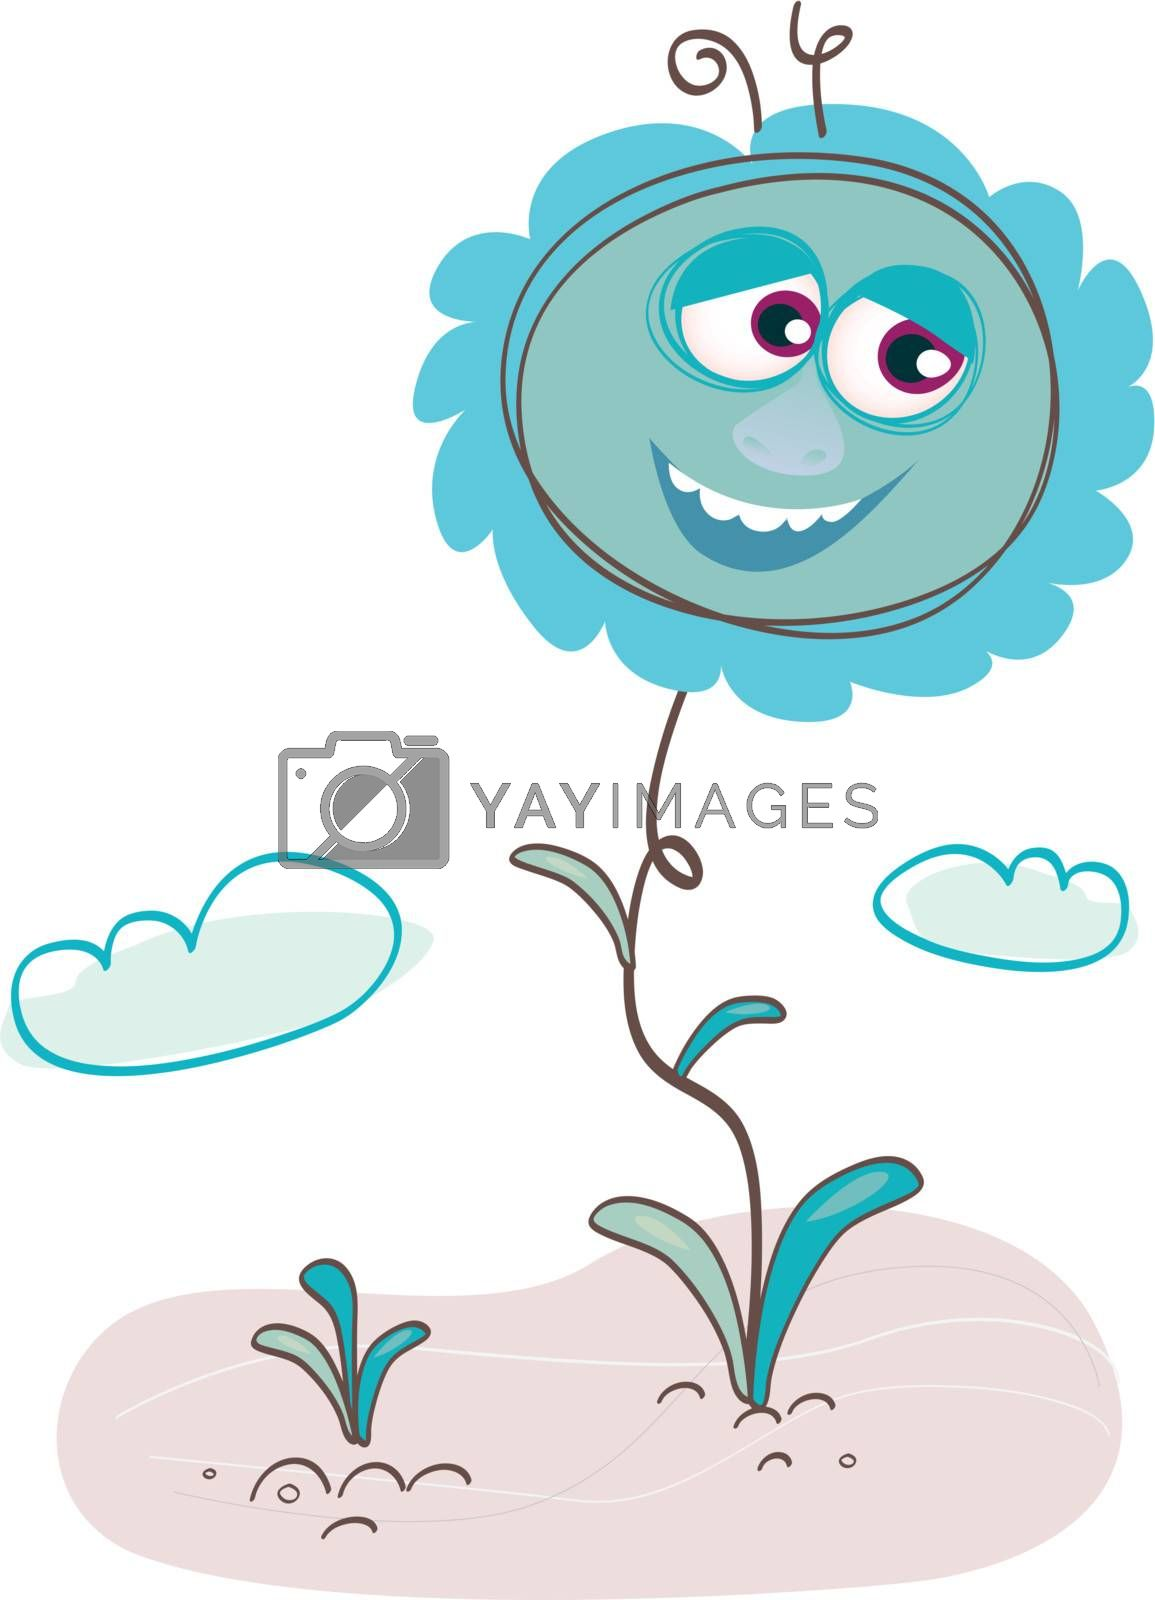 Sky is blue, Hortius the flower is blue, everything is BLUE. Art Vector Illustration.